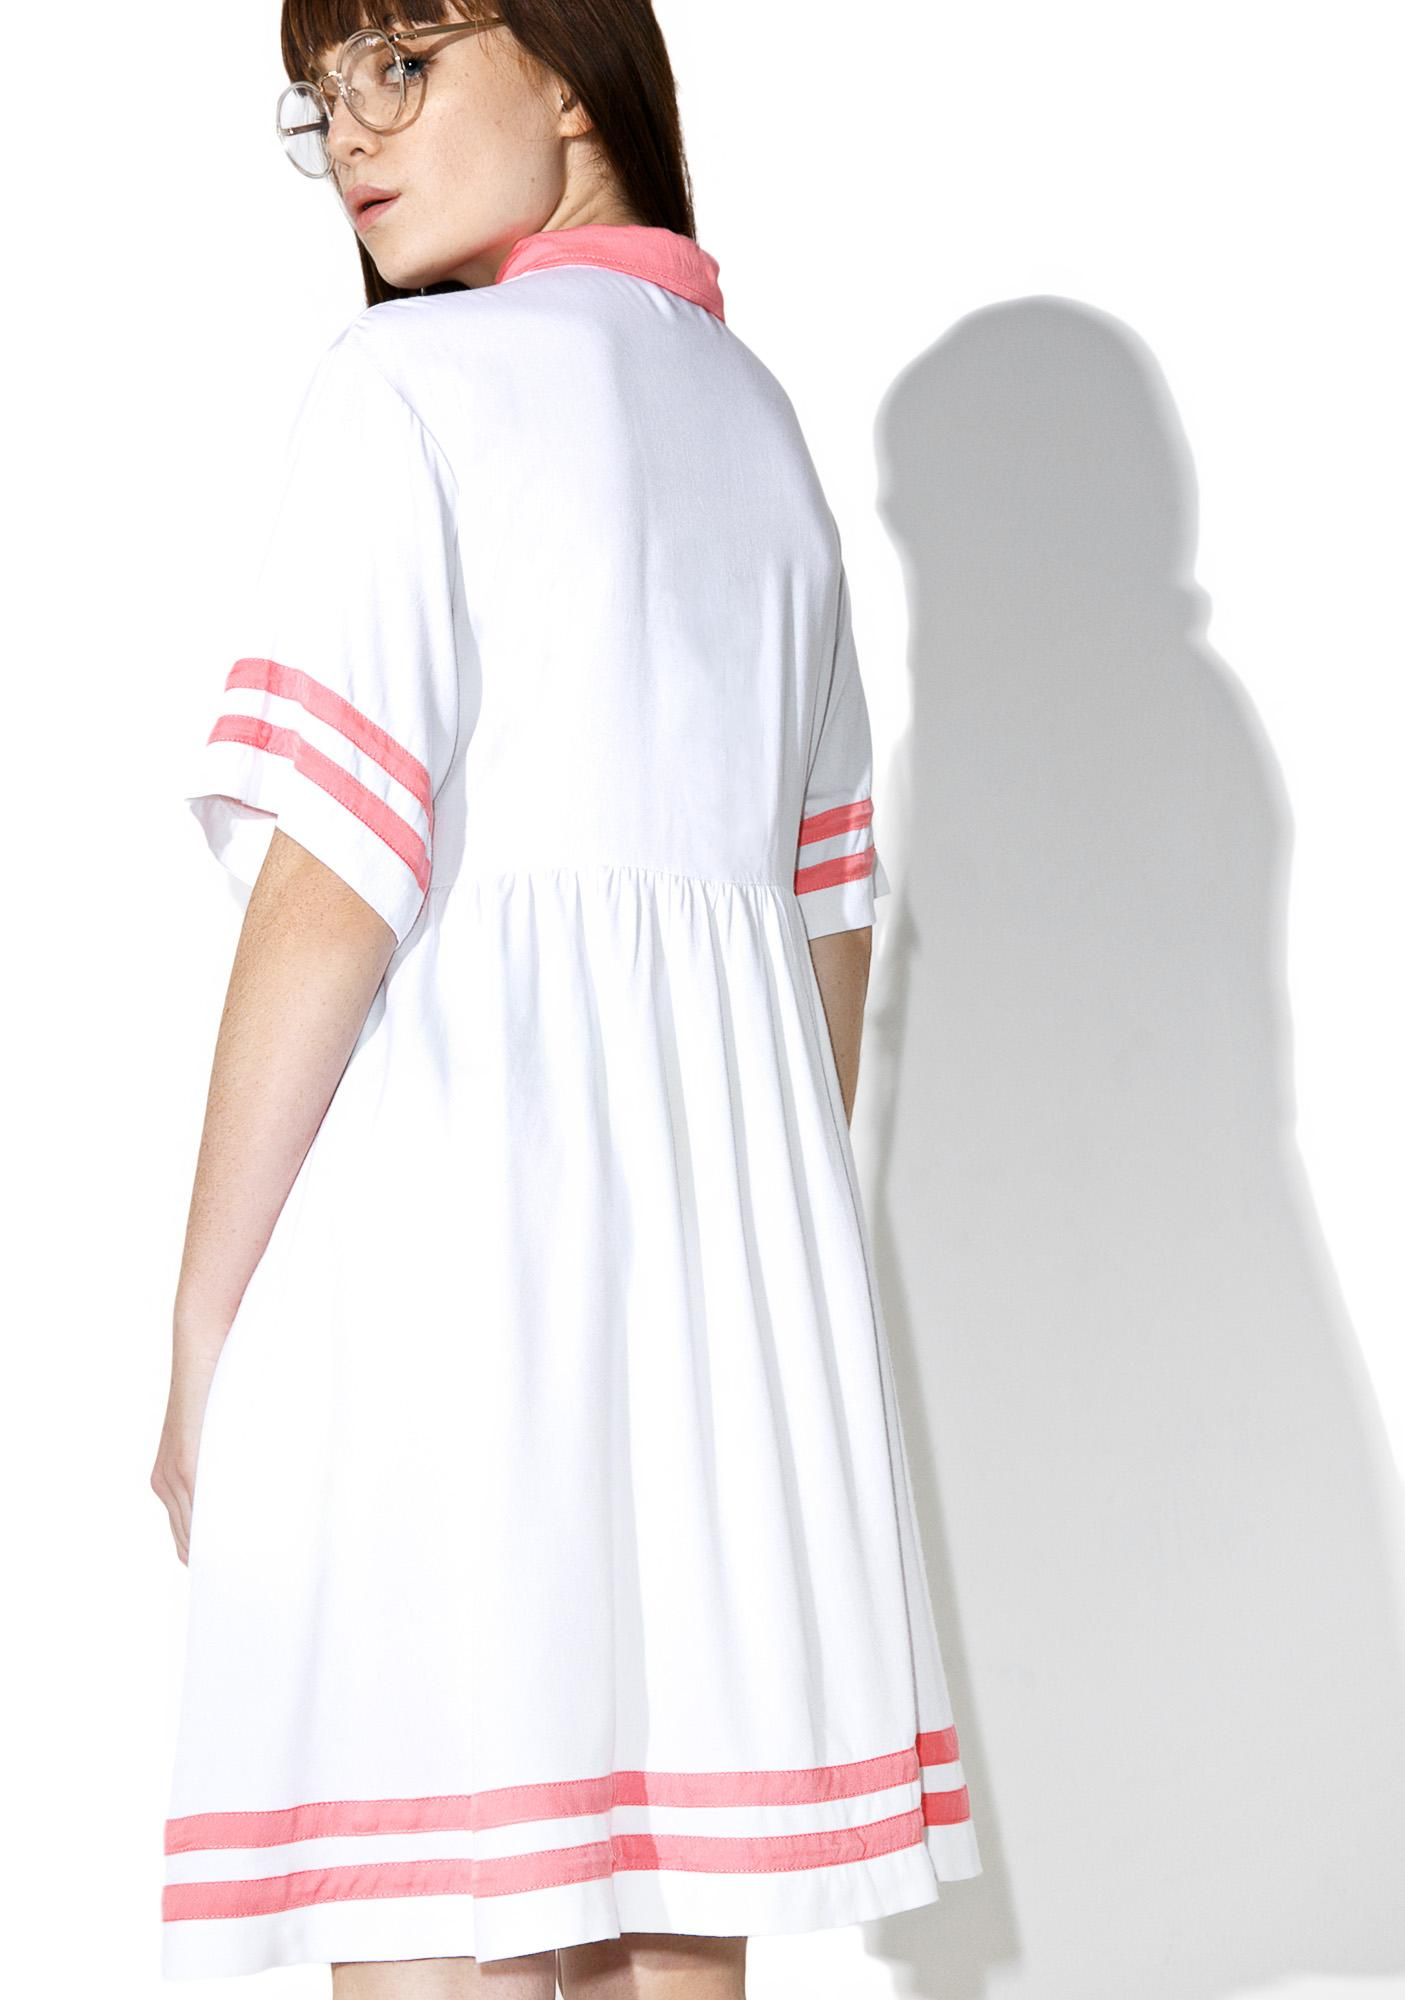 Lazy Oaf White Cherry Dress